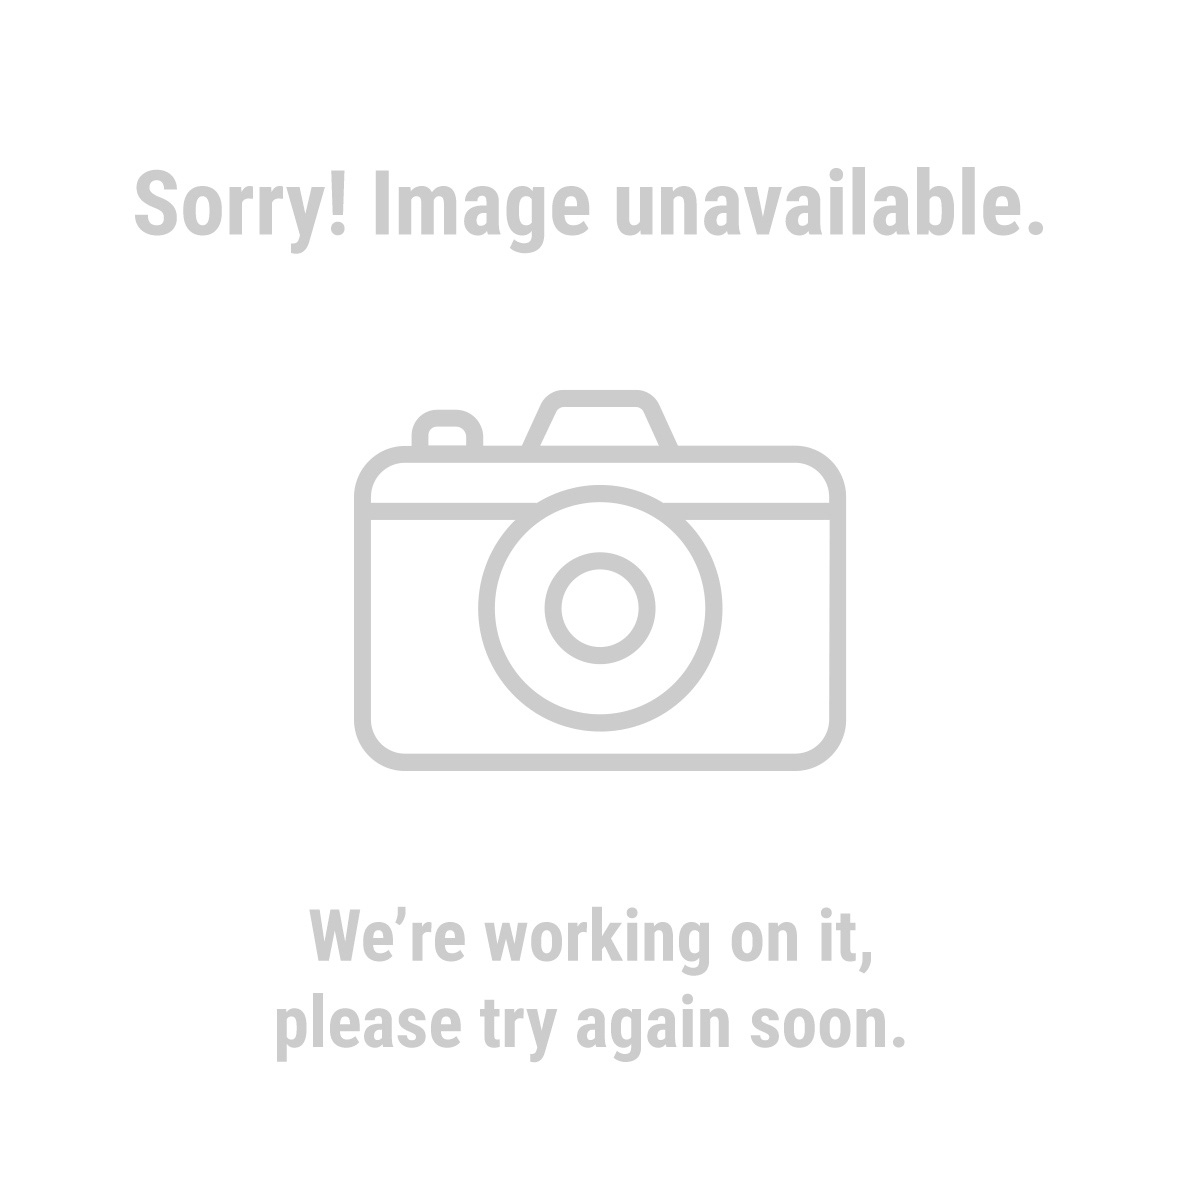 Harbor Freight floor jack, would you trust/use it